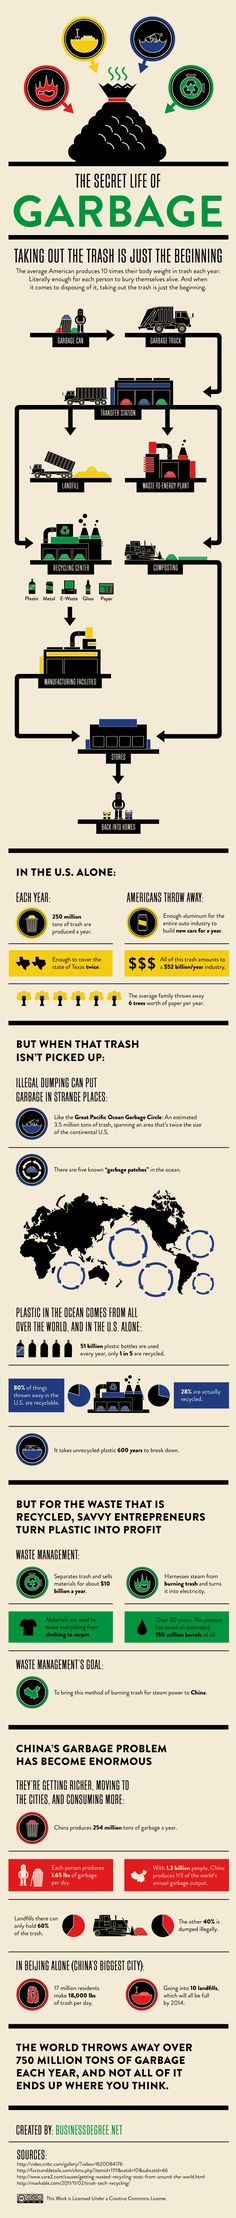 Secret life of garbage infographic. The world throws away more than 750 million tons of garbage each year, and not all of it ends up where you think. Secret Life, The Secret, Solid Waste, Carbon Footprint, Environmental Science, Business Management, Data Visualization, Global Warming, Renewable Energy